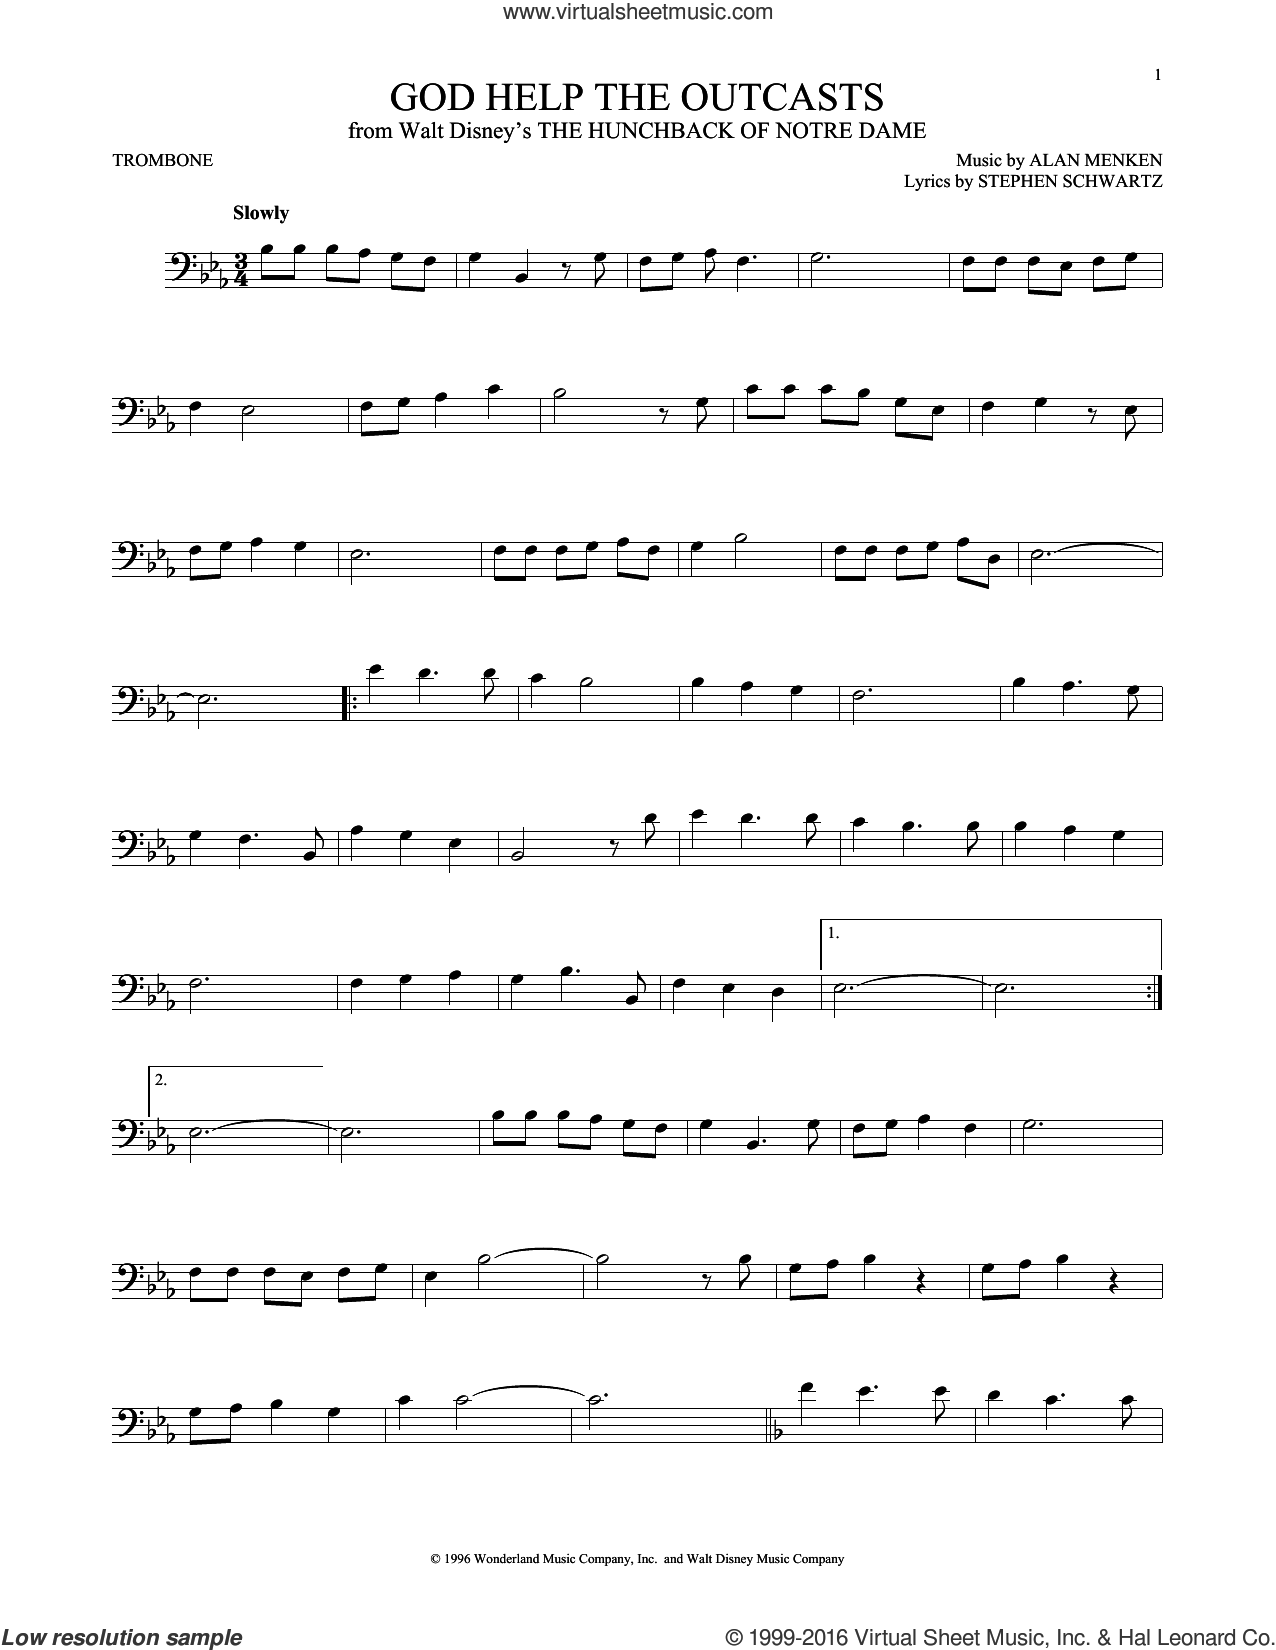 God Help The Outcasts sheet music for trombone solo by Stephen Schwartz